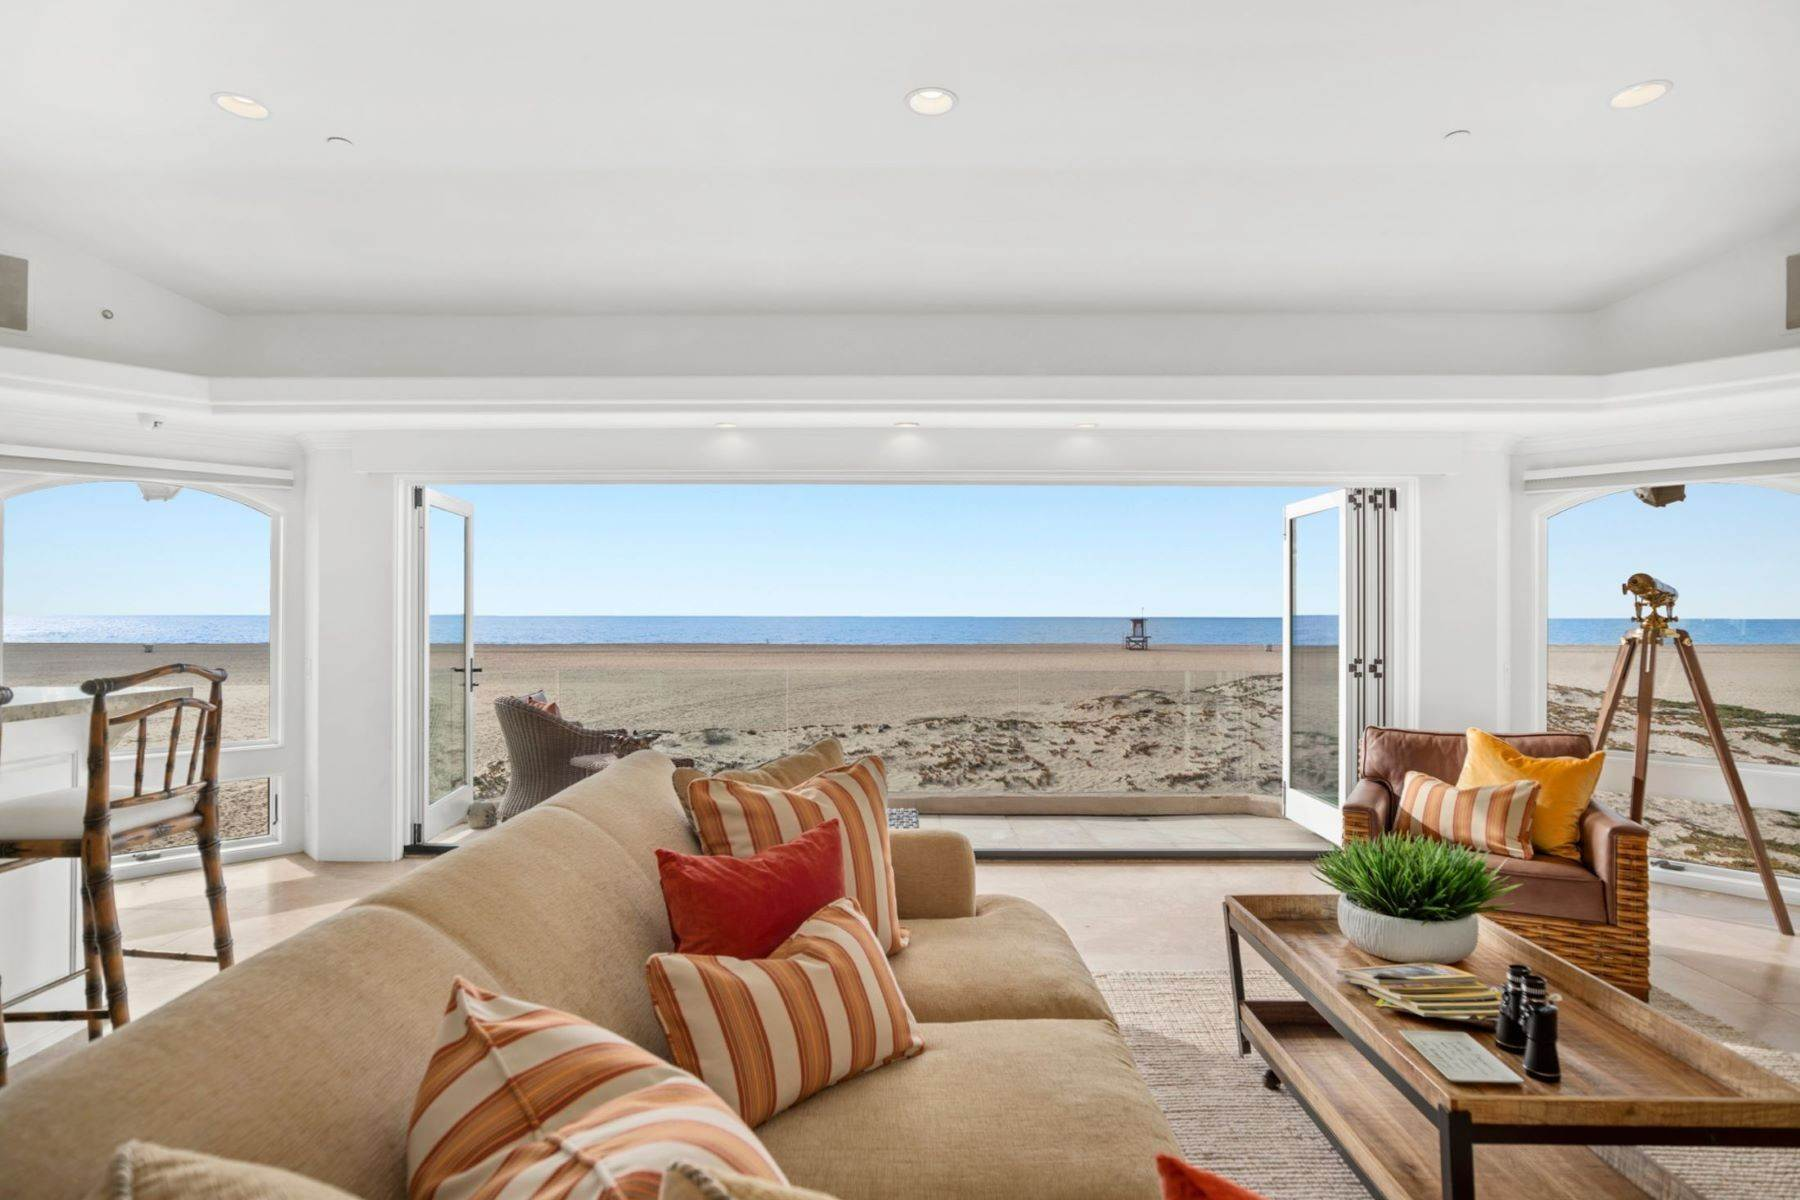 9. Single Family Homes for Sale at 930 Weat Oceanfront 930 W OCEANFRONT Newport Beach, California 92661 United States